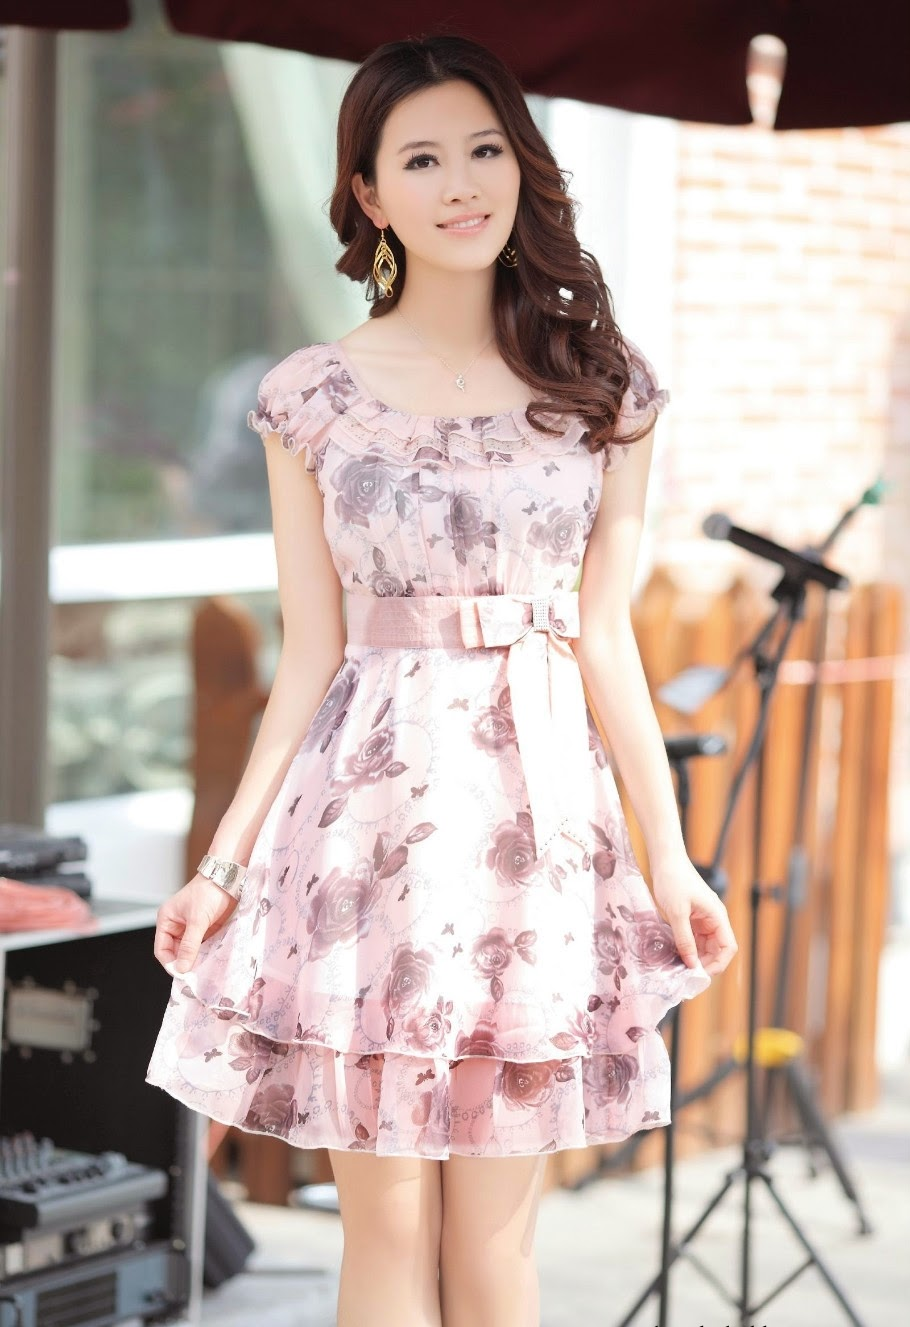 Cute girl clothing online